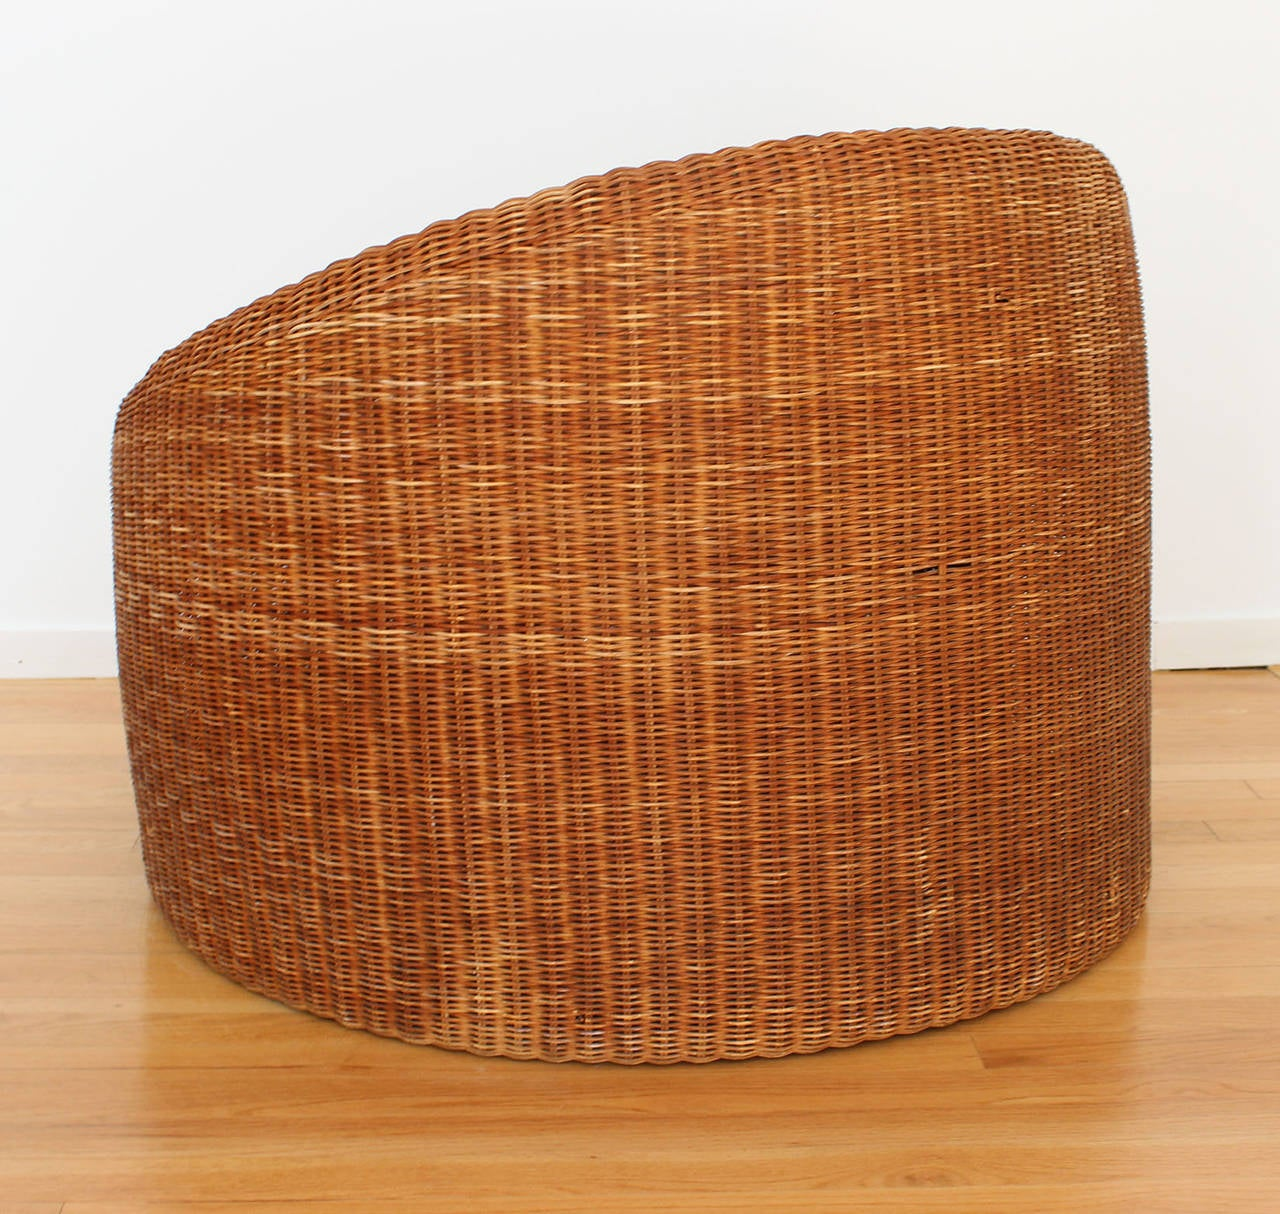 Mid-20th Century Eero Aarnio Rattan Chair For Sale